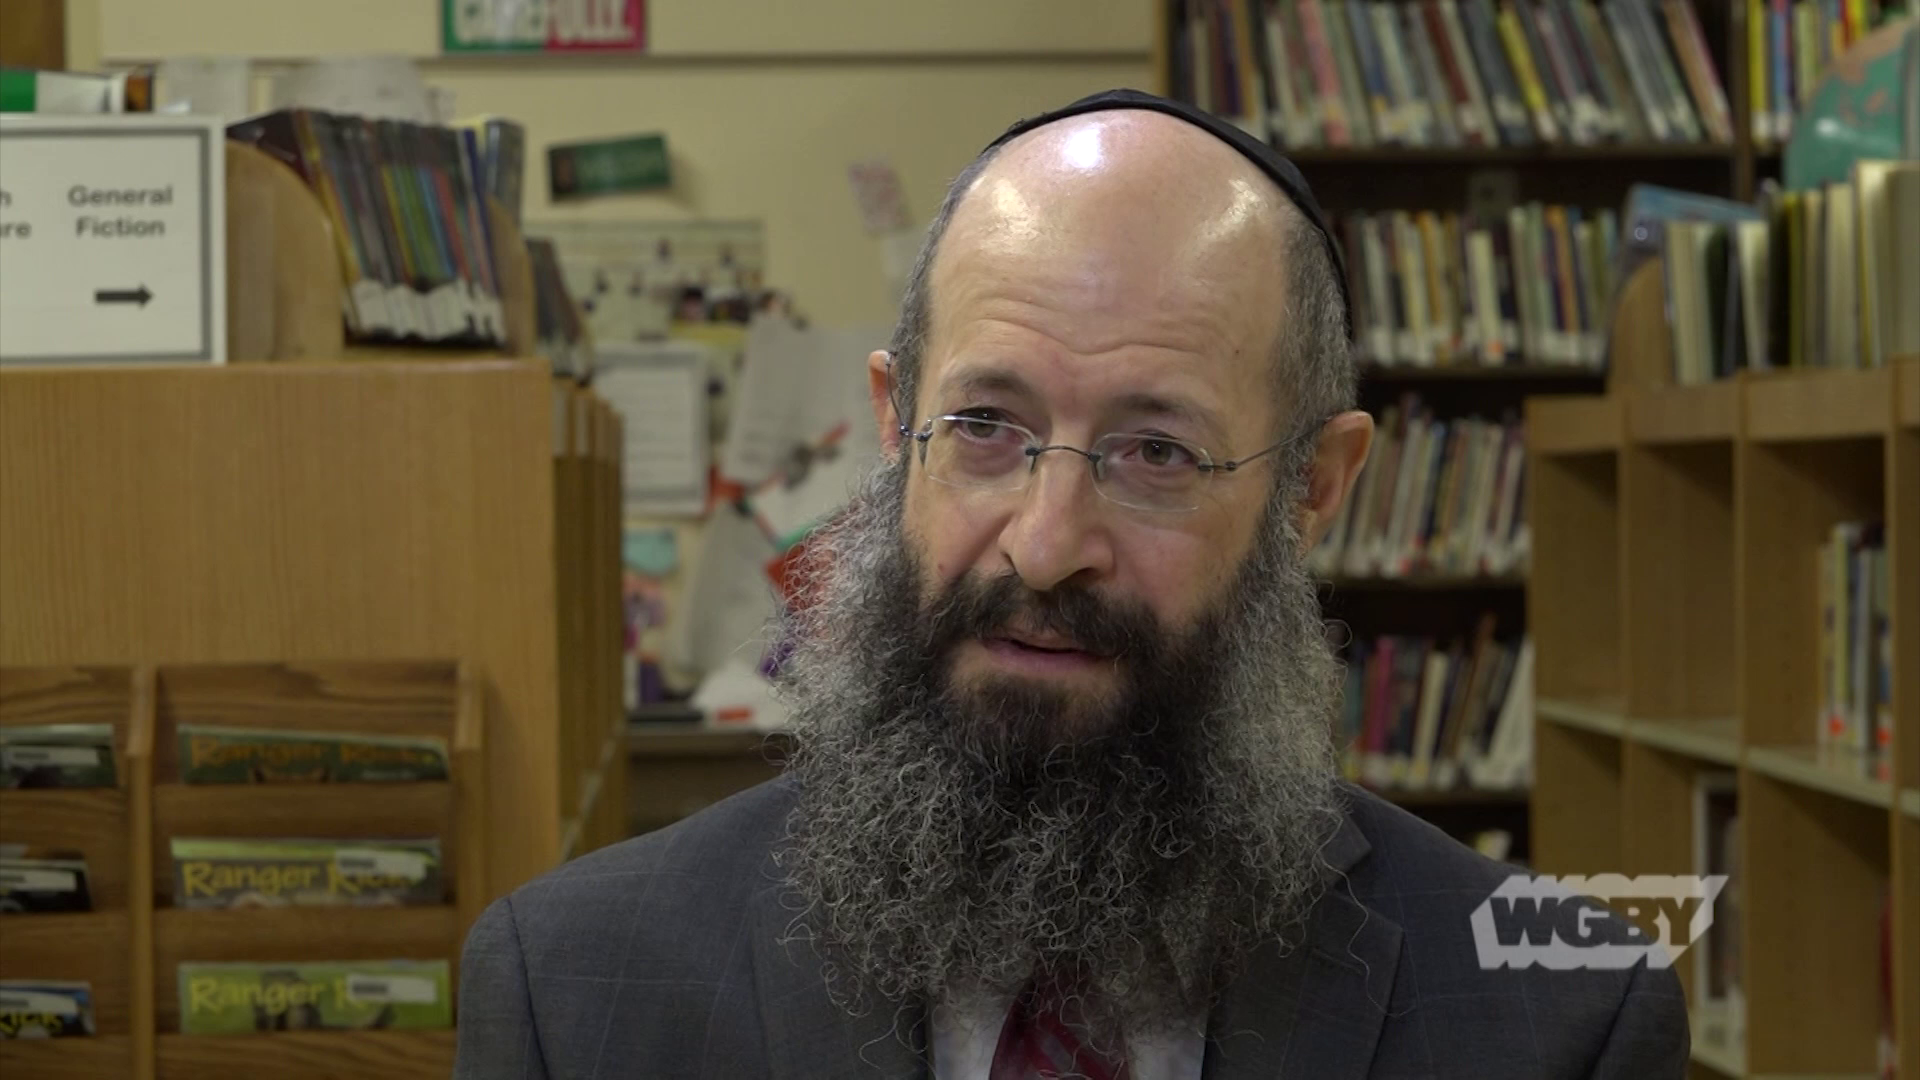 Rabbi Noach Kosofsky of Lubavitcher Yeshiva Academy in Longmeadow discusses how the local Jewishcommunity is coping with the Pittsburgh synagogue shooting.